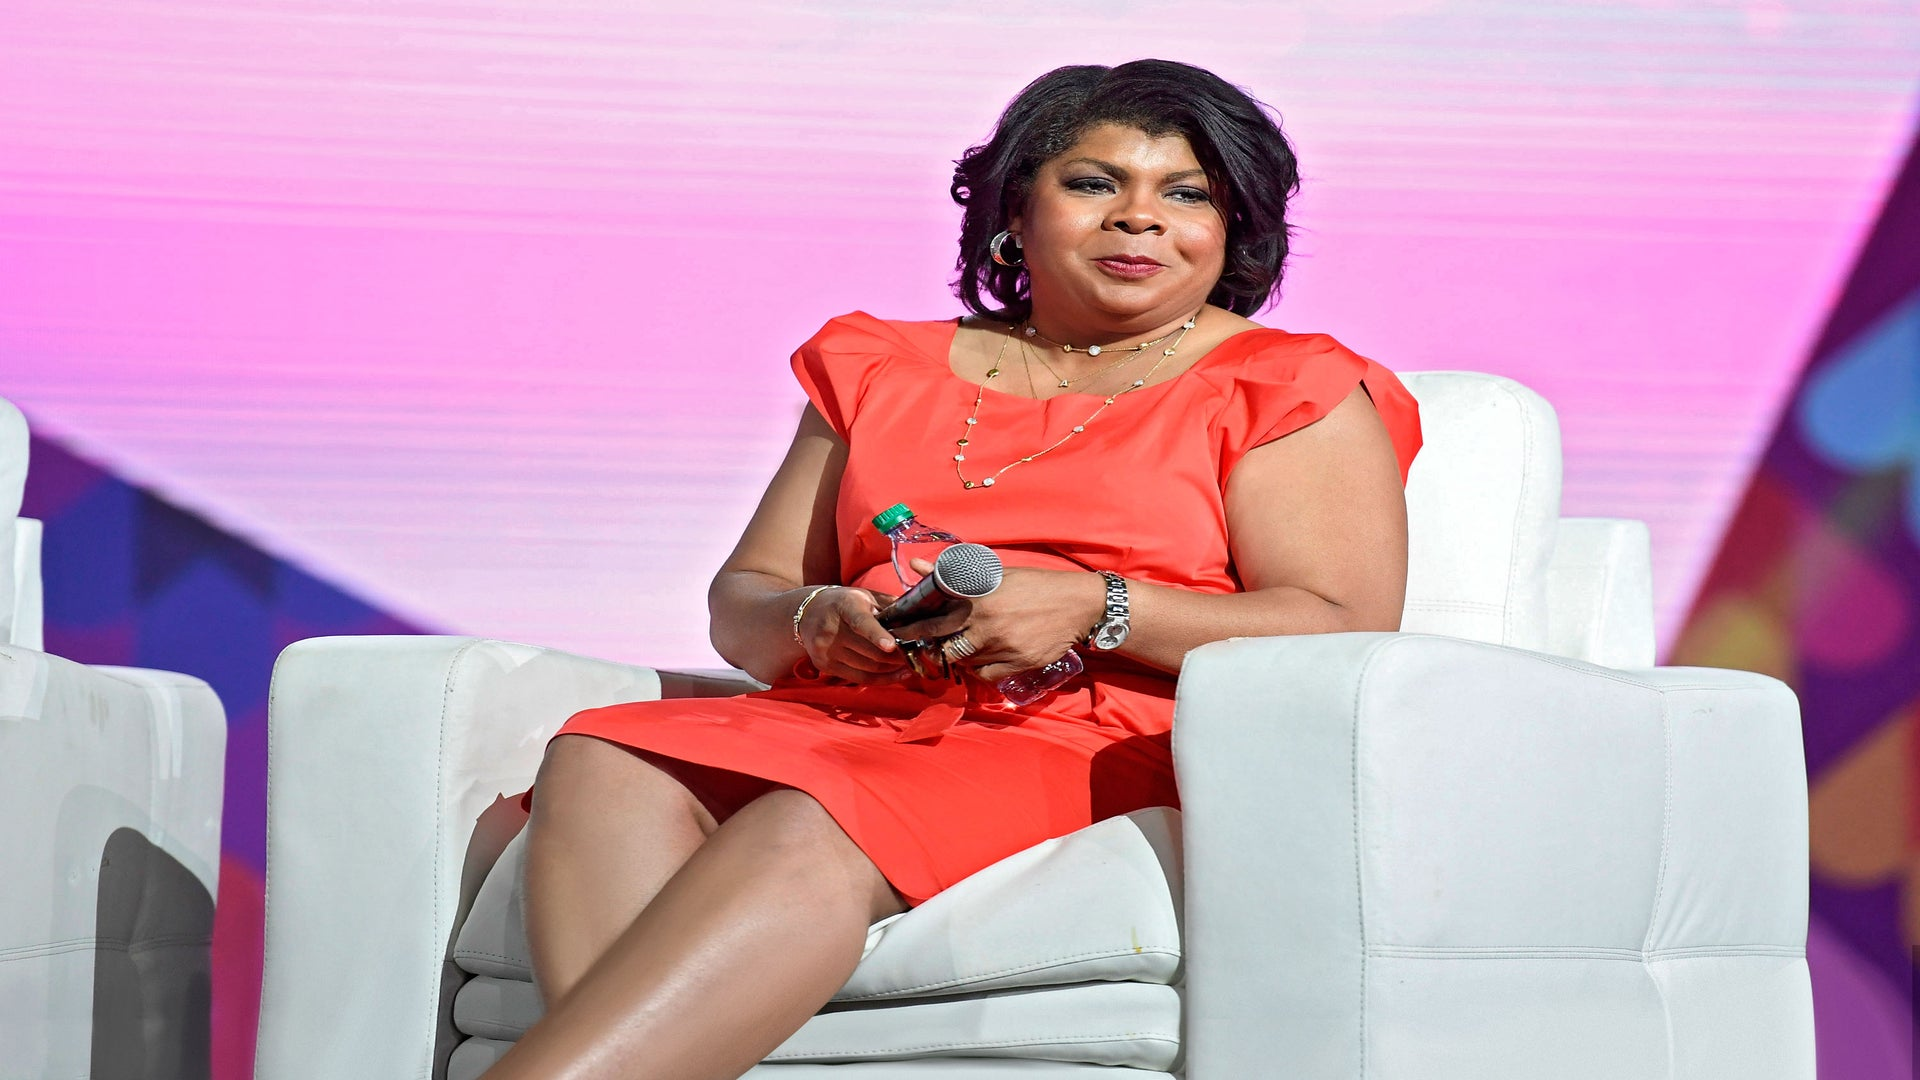 White House Bars April Ryan From Attending Annual Christmas Party